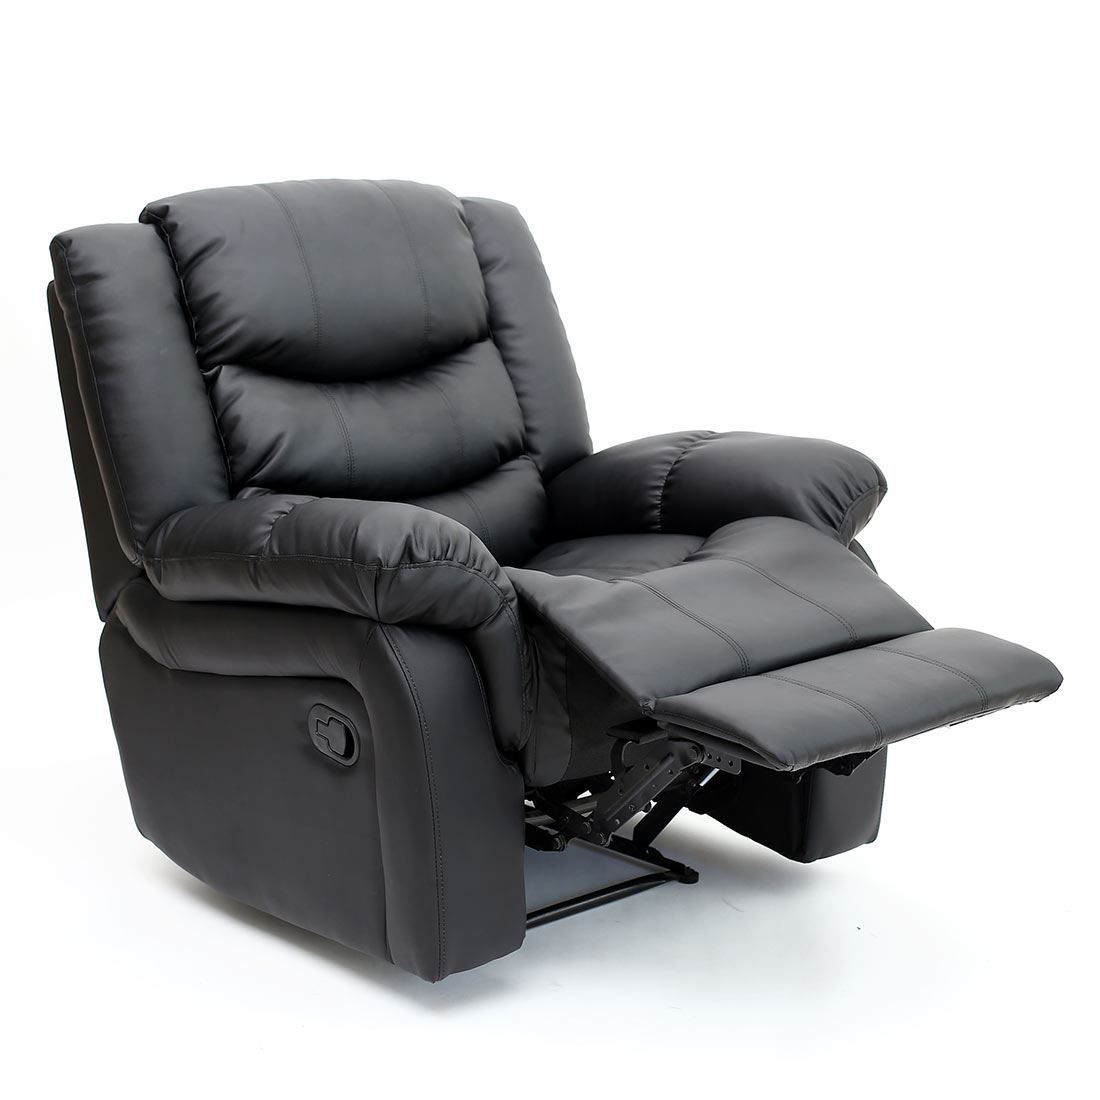 reclining gaming chair chaise lounge with storage seattle leather recliner armchair sofa home